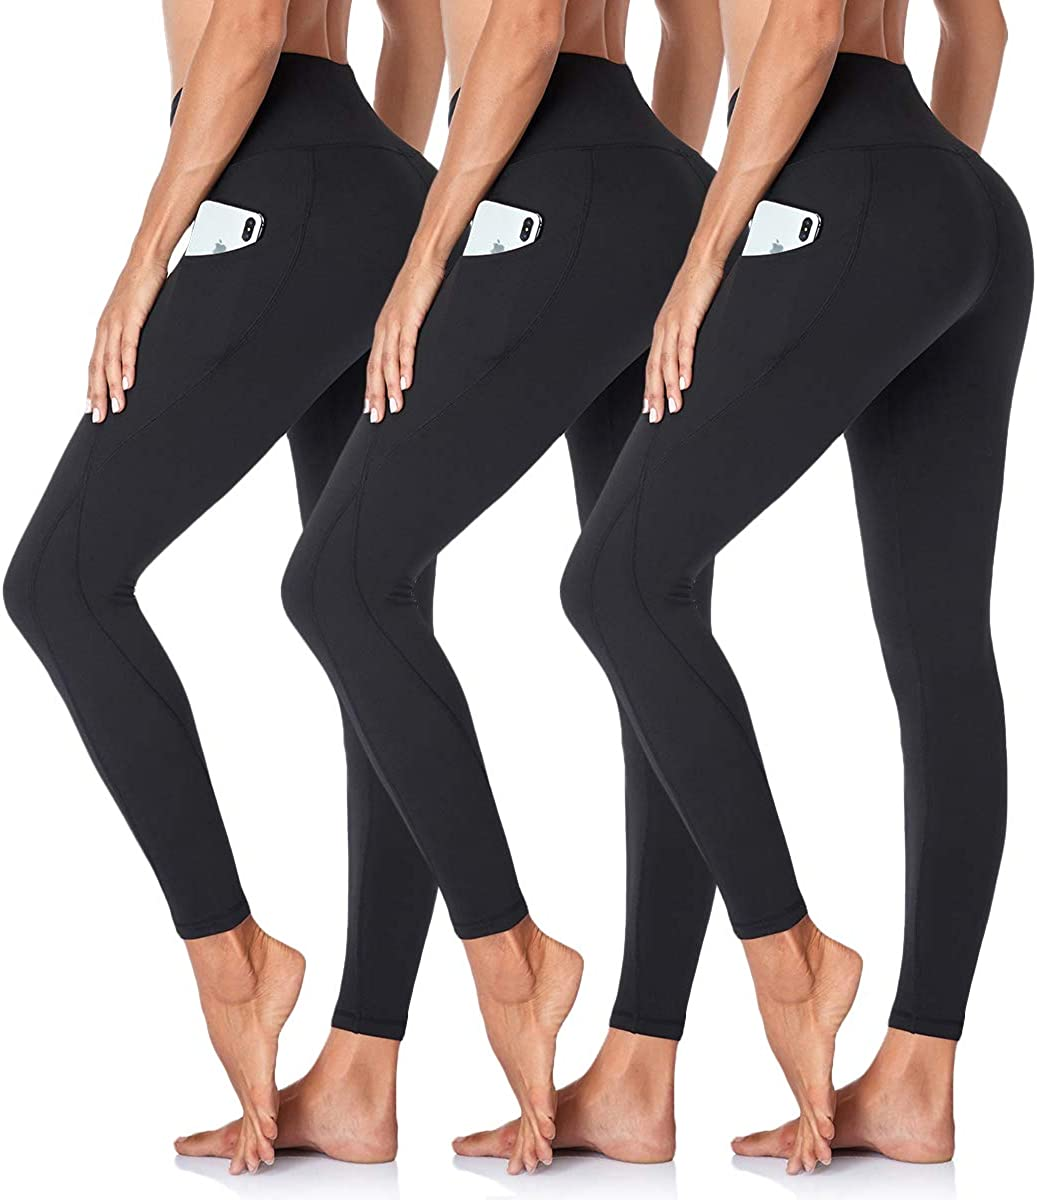 GAYHAY 3 Pack High Waist Yoga Pants for Houston Mall Max 61% OFF Pockets Women Tum with -